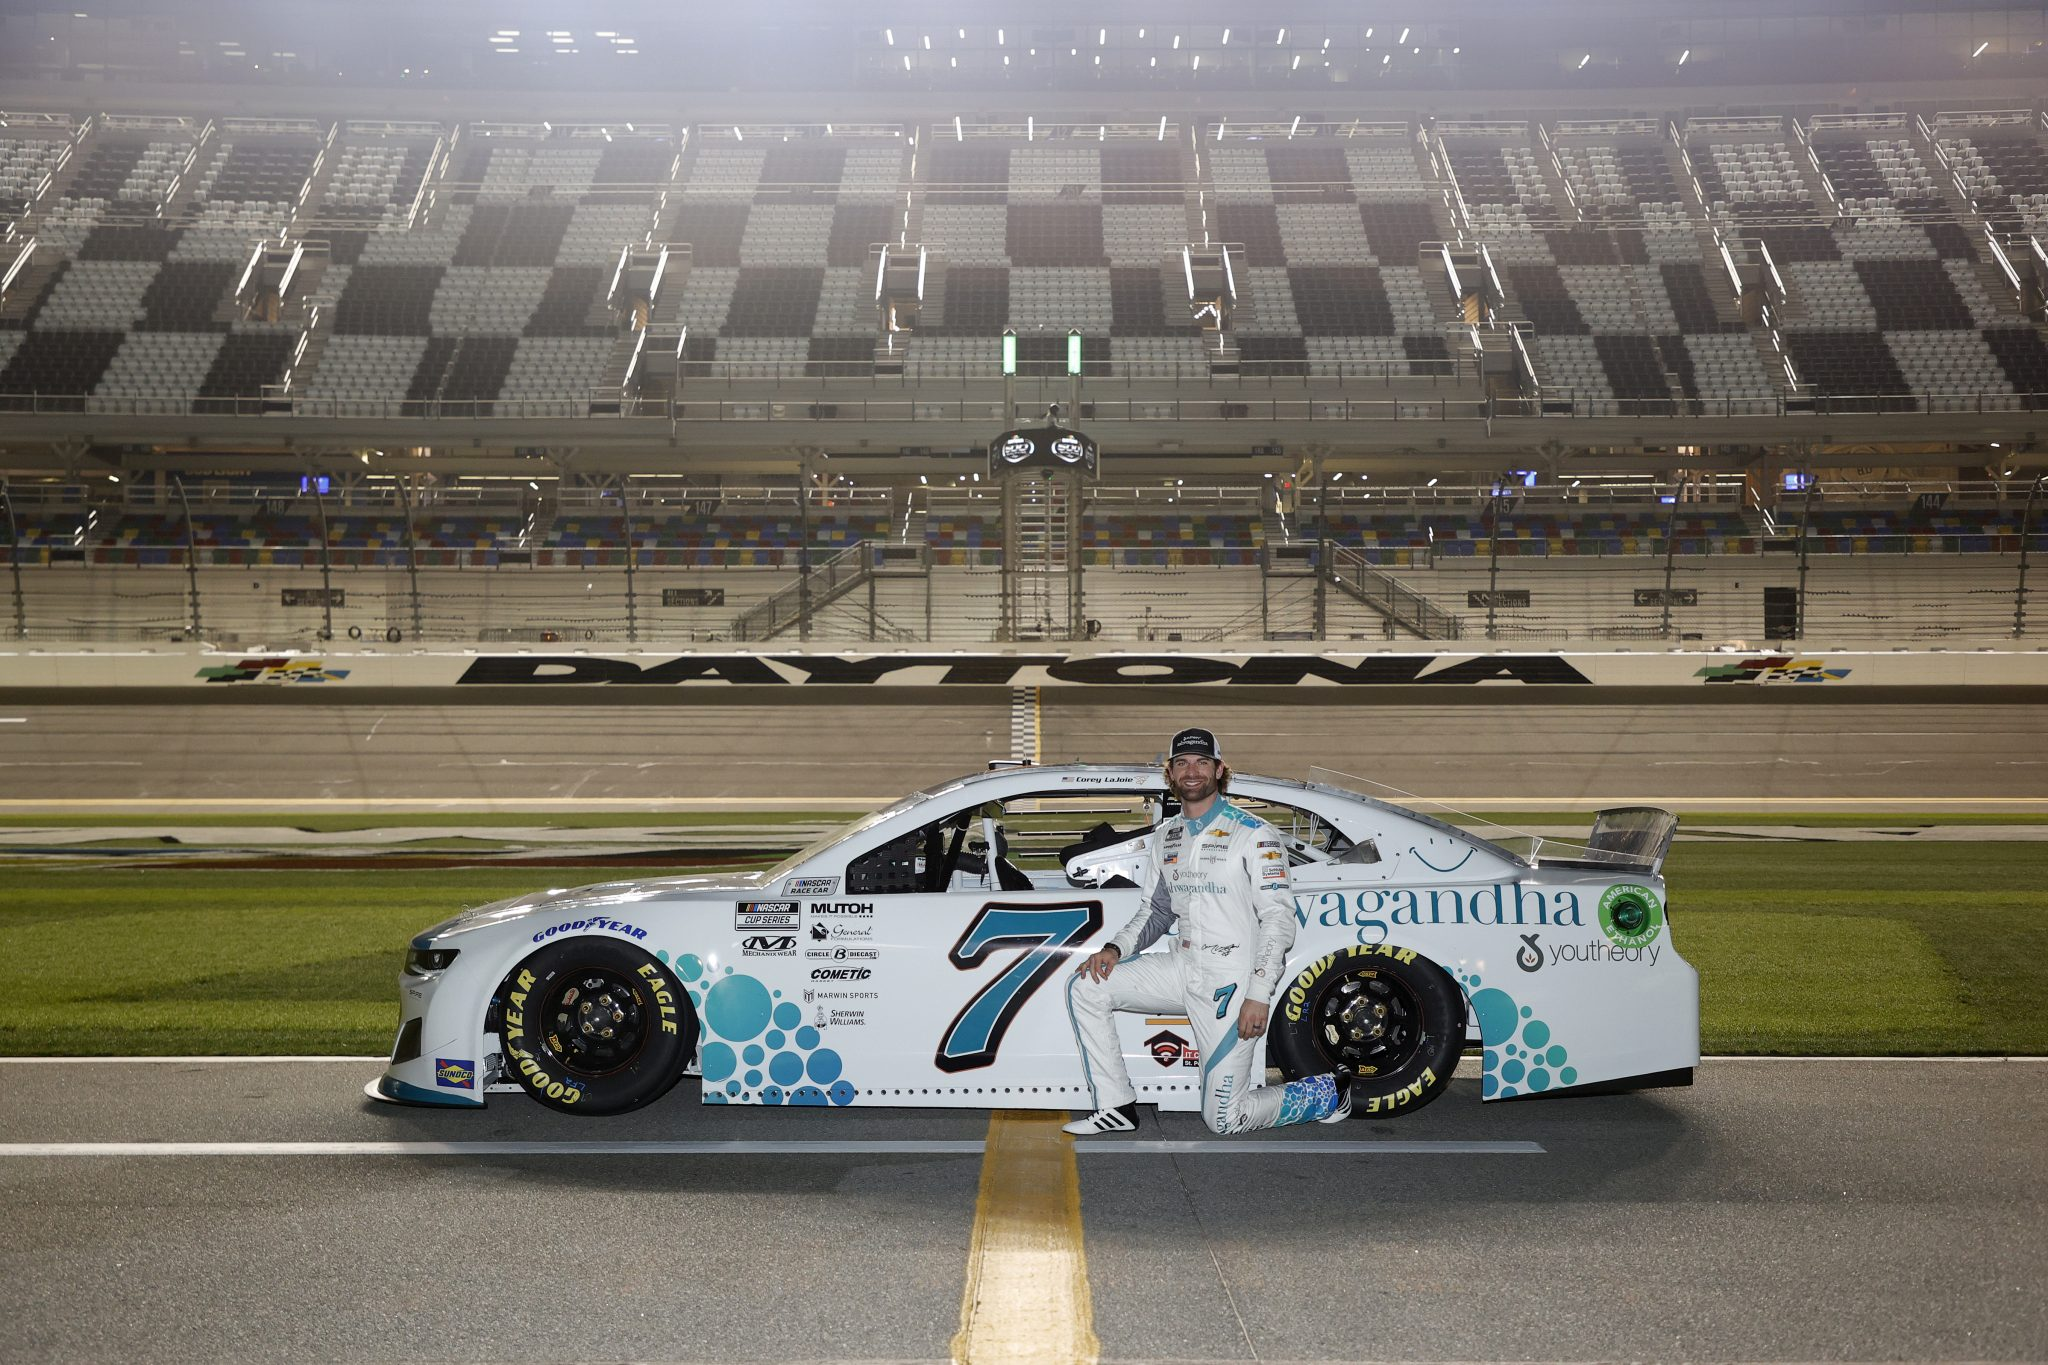 DAYTONA BEACH, FLORIDA - FEBRUARY 10: Corey LaJoie, driver of the #7 Youtheory Chevrolet, poses for photos during qualifying for the NASCAR Cup Series 63rd Annual Daytona 500 at Daytona International Speedway on February 10, 2021 in Daytona Beach, Florida. (Photo by Jared C. Tilton/Getty Images) | Getty Images